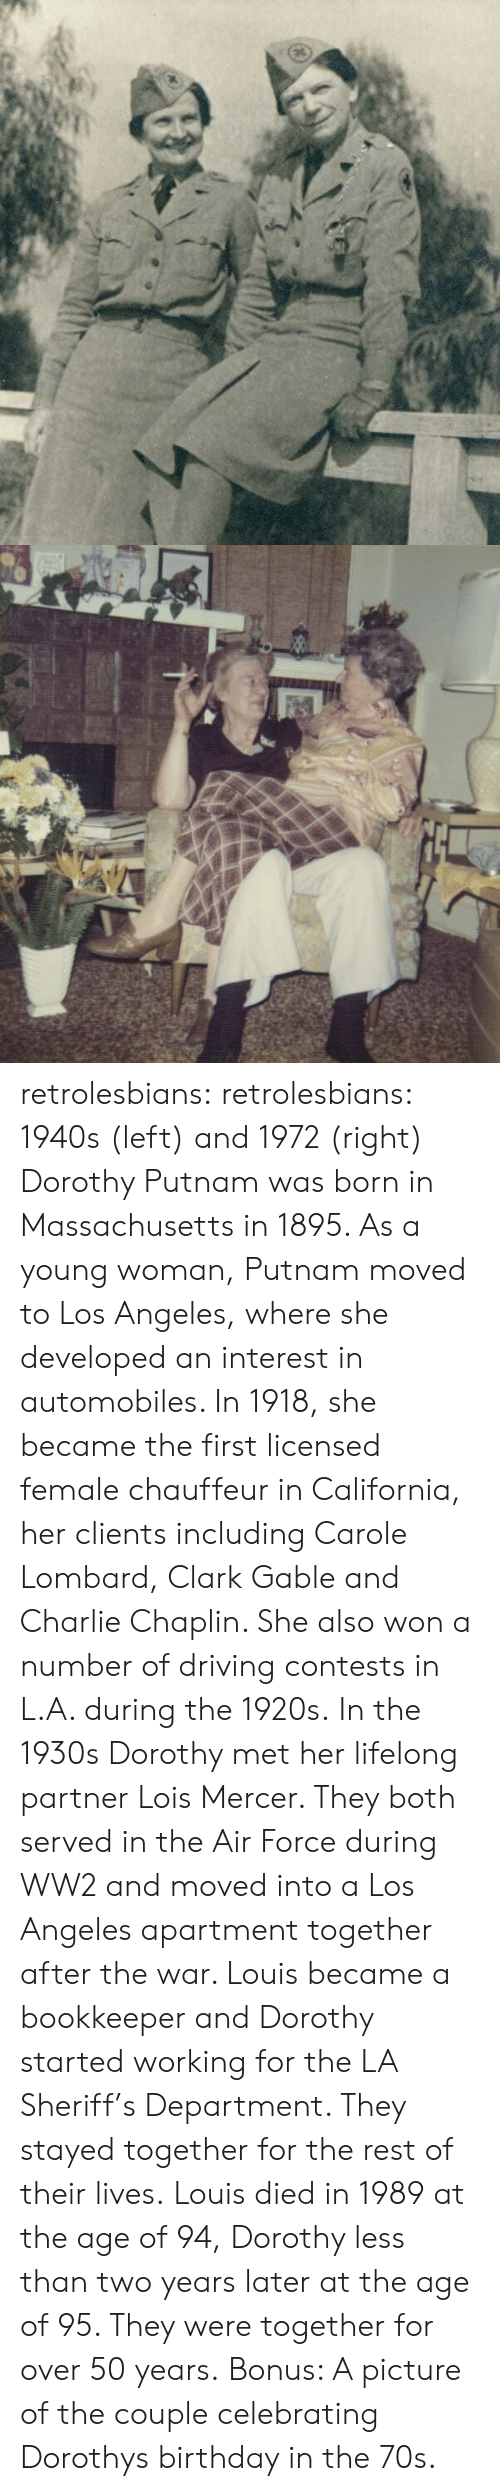 Birthday, Charlie, and Driving: retrolesbians:  retrolesbians:  1940s (left) and 1972 (right)   Dorothy Putnam was born in Massachusetts in 1895. As a young woman, Putnam moved to Los Angeles, where she developed an interest in automobiles. In 1918, she became the first licensed female chauffeur in California, her clients including Carole Lombard, Clark Gable and Charlie Chaplin. She also won a number of driving contests in L.A. during the 1920s.  In the 1930s Dorothy met her lifelong partner Lois Mercer. They both served in the Air Force during WW2 and moved into a Los Angeles apartment together after the war. Louis became a bookkeeper and Dorothy started working for the LA Sheriff's Department. They stayed together for the rest of their lives. Louis died in 1989 at the age of 94, Dorothy less than two years later at the age of 95. They were together for over 50 years.  Bonus: A picture of the couple celebrating Dorothys birthday in the 70s.